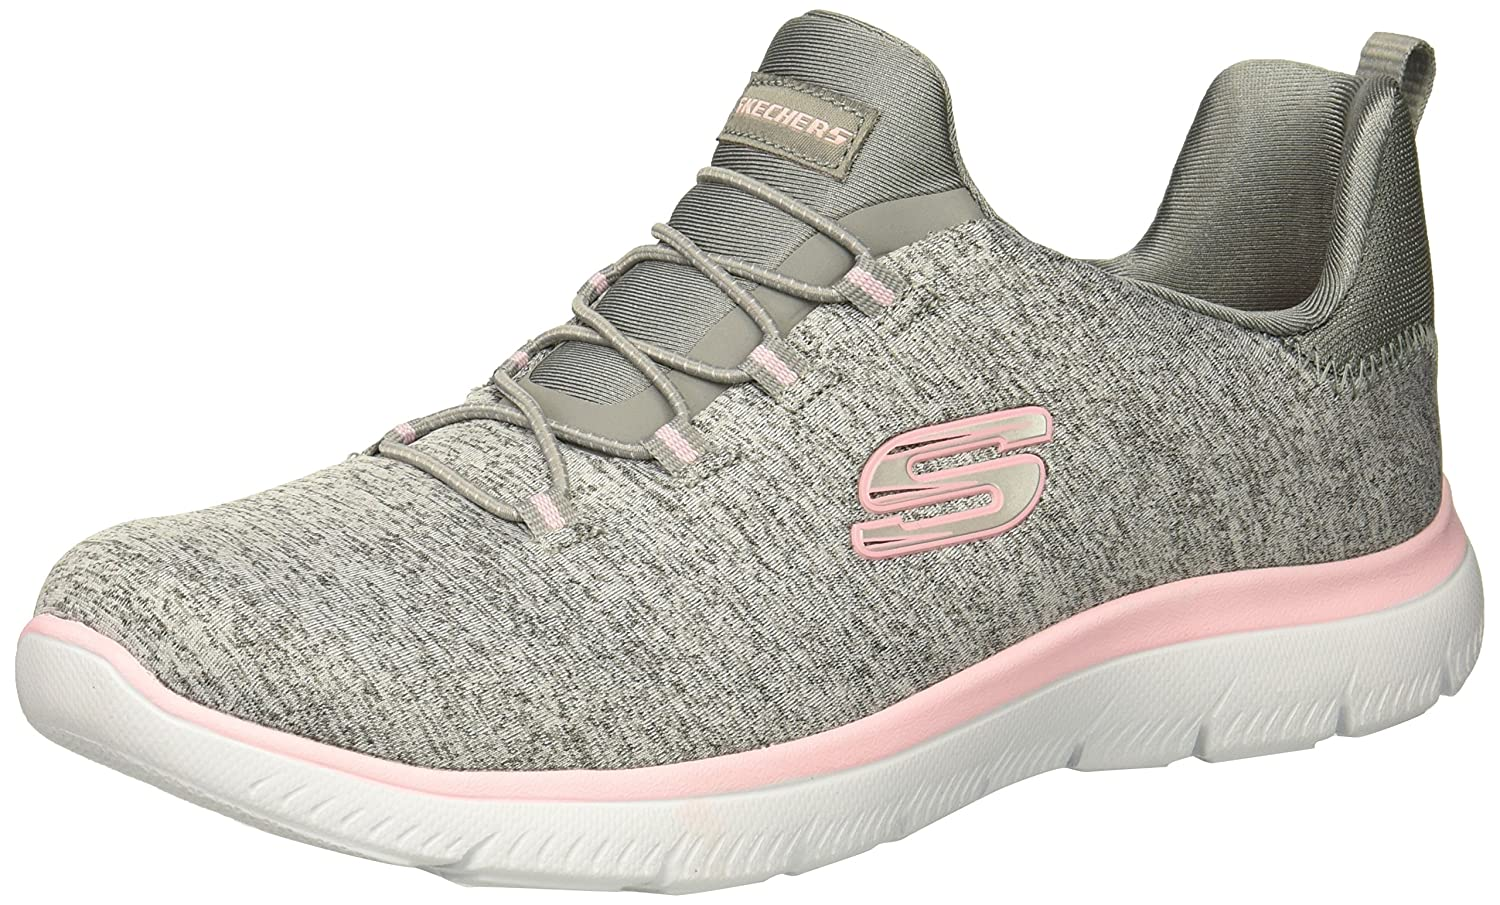 Skechers Women's Summits Sneaker B07795ZQ1J 6.5 B(M) US|Grey Light Pink